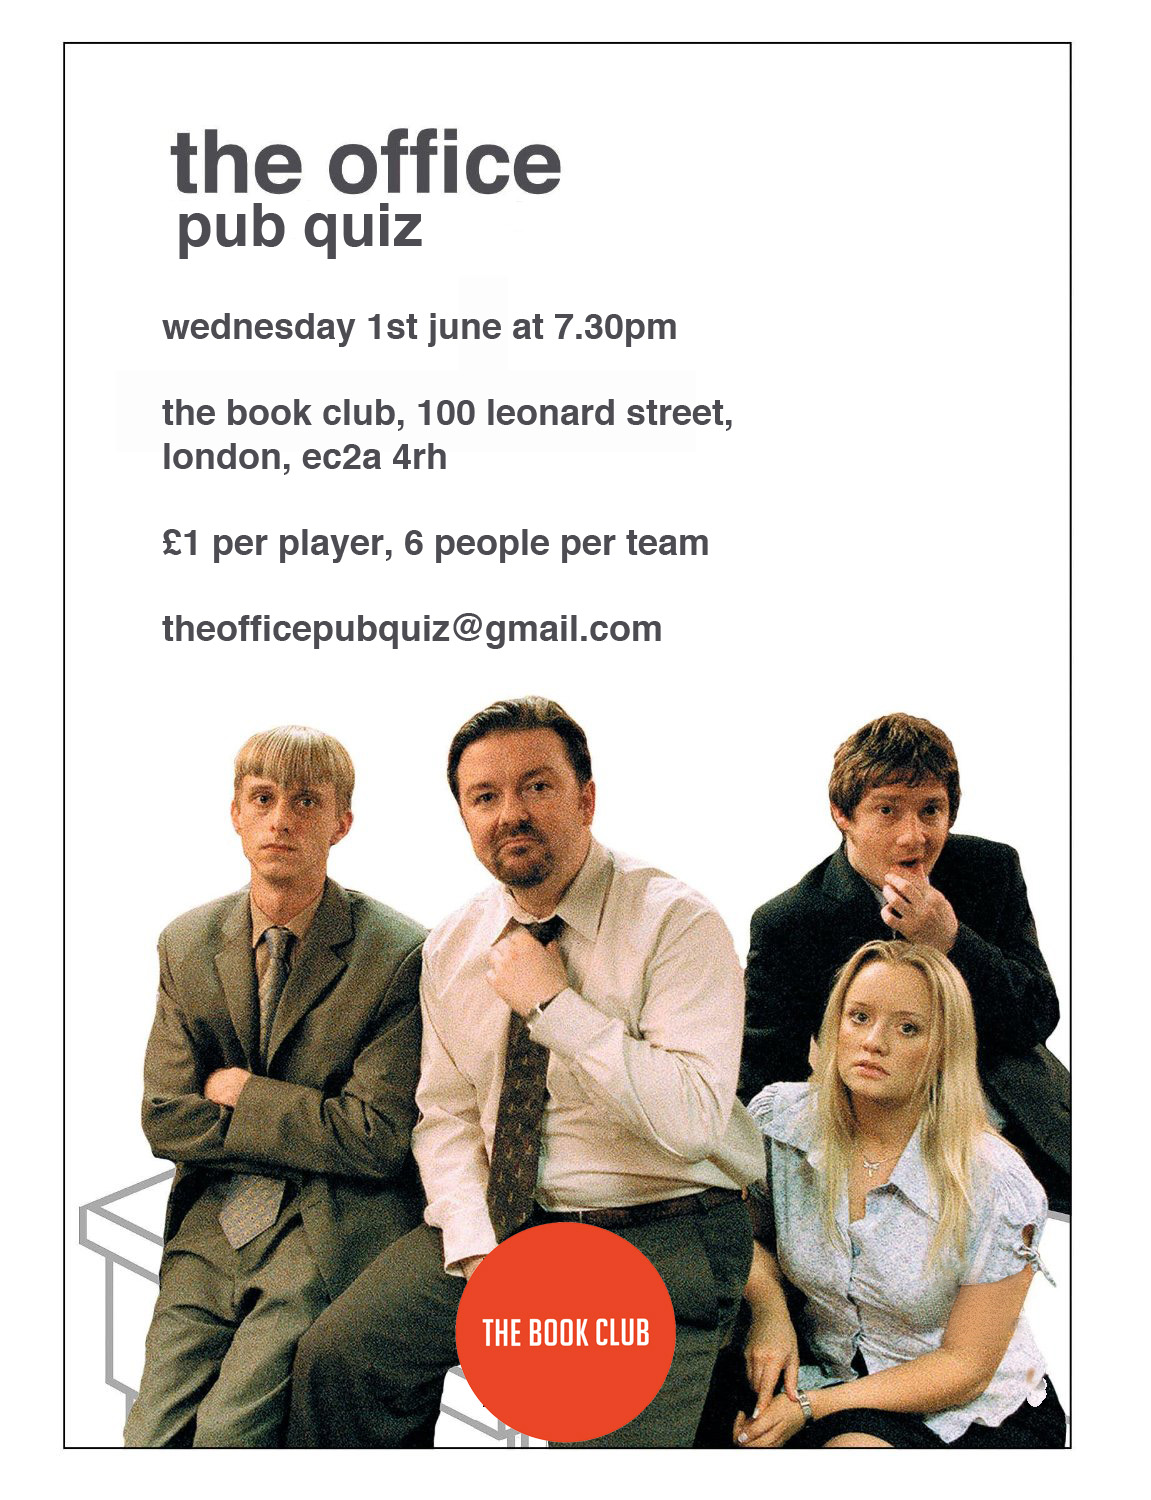 The Office Pub Quiz